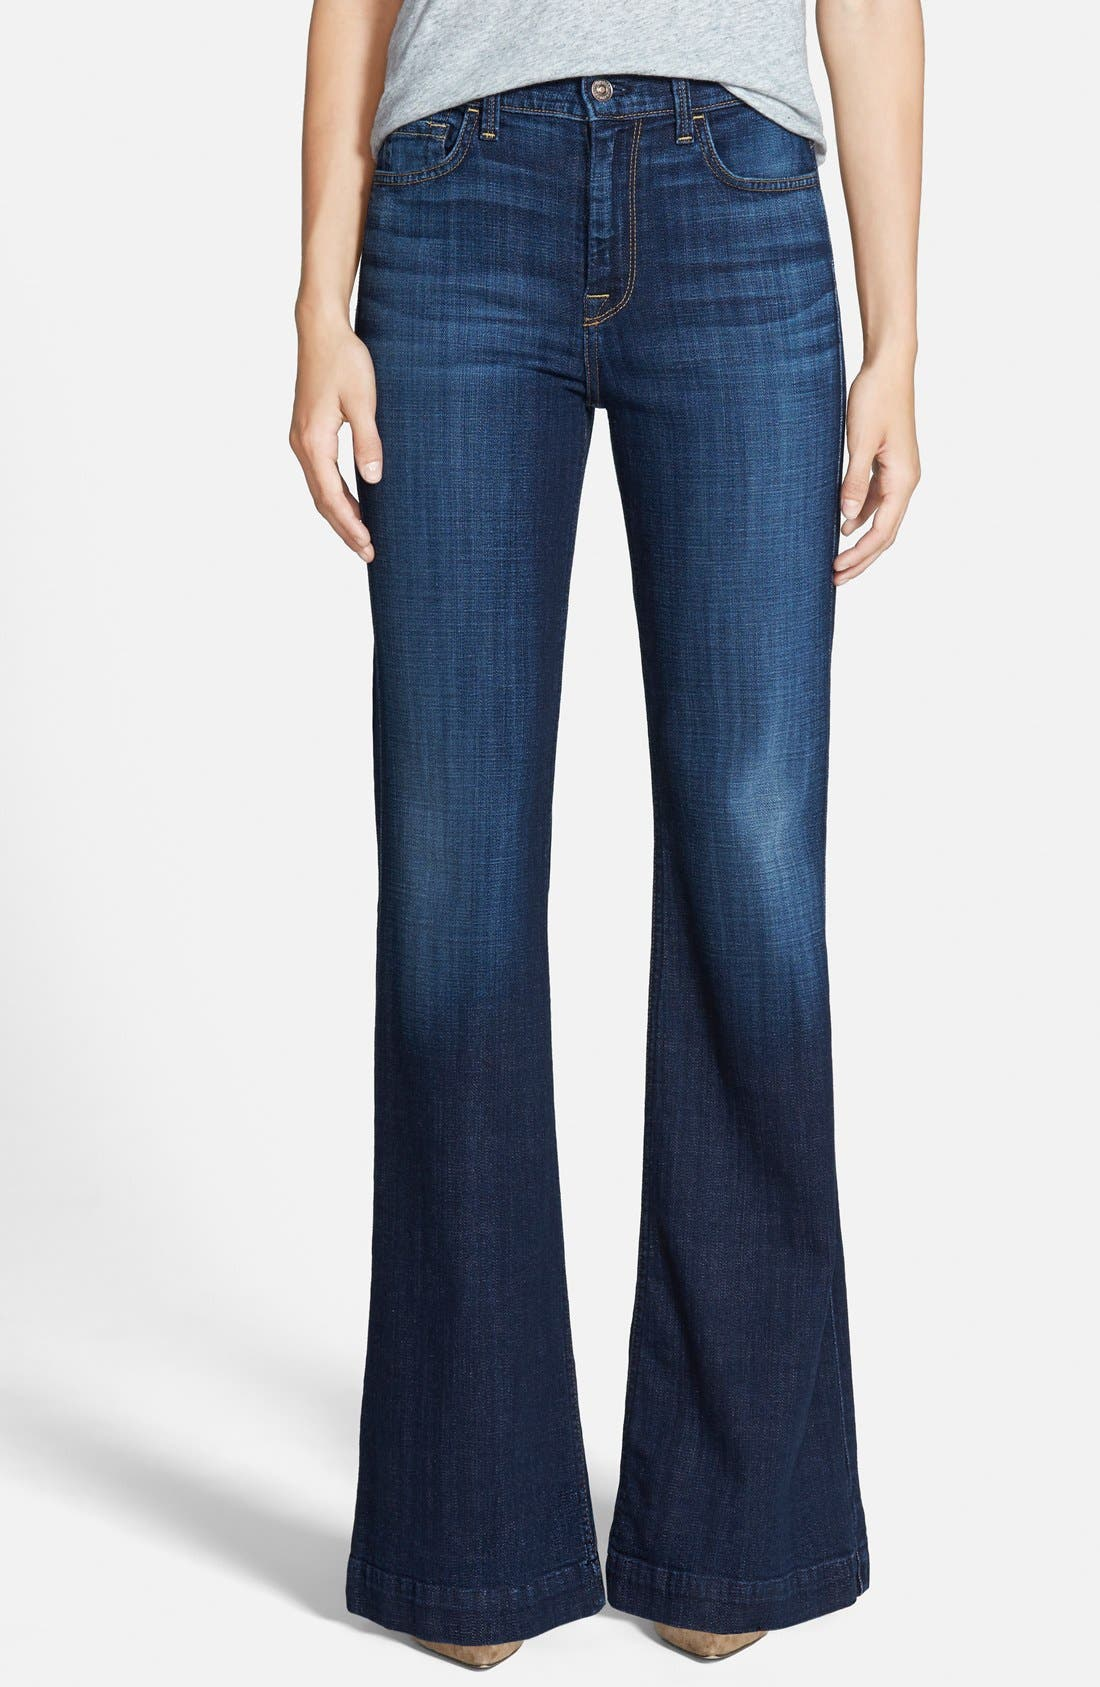 'Ginger' High Rise Flare Jeans,                             Main thumbnail 1, color,                             400